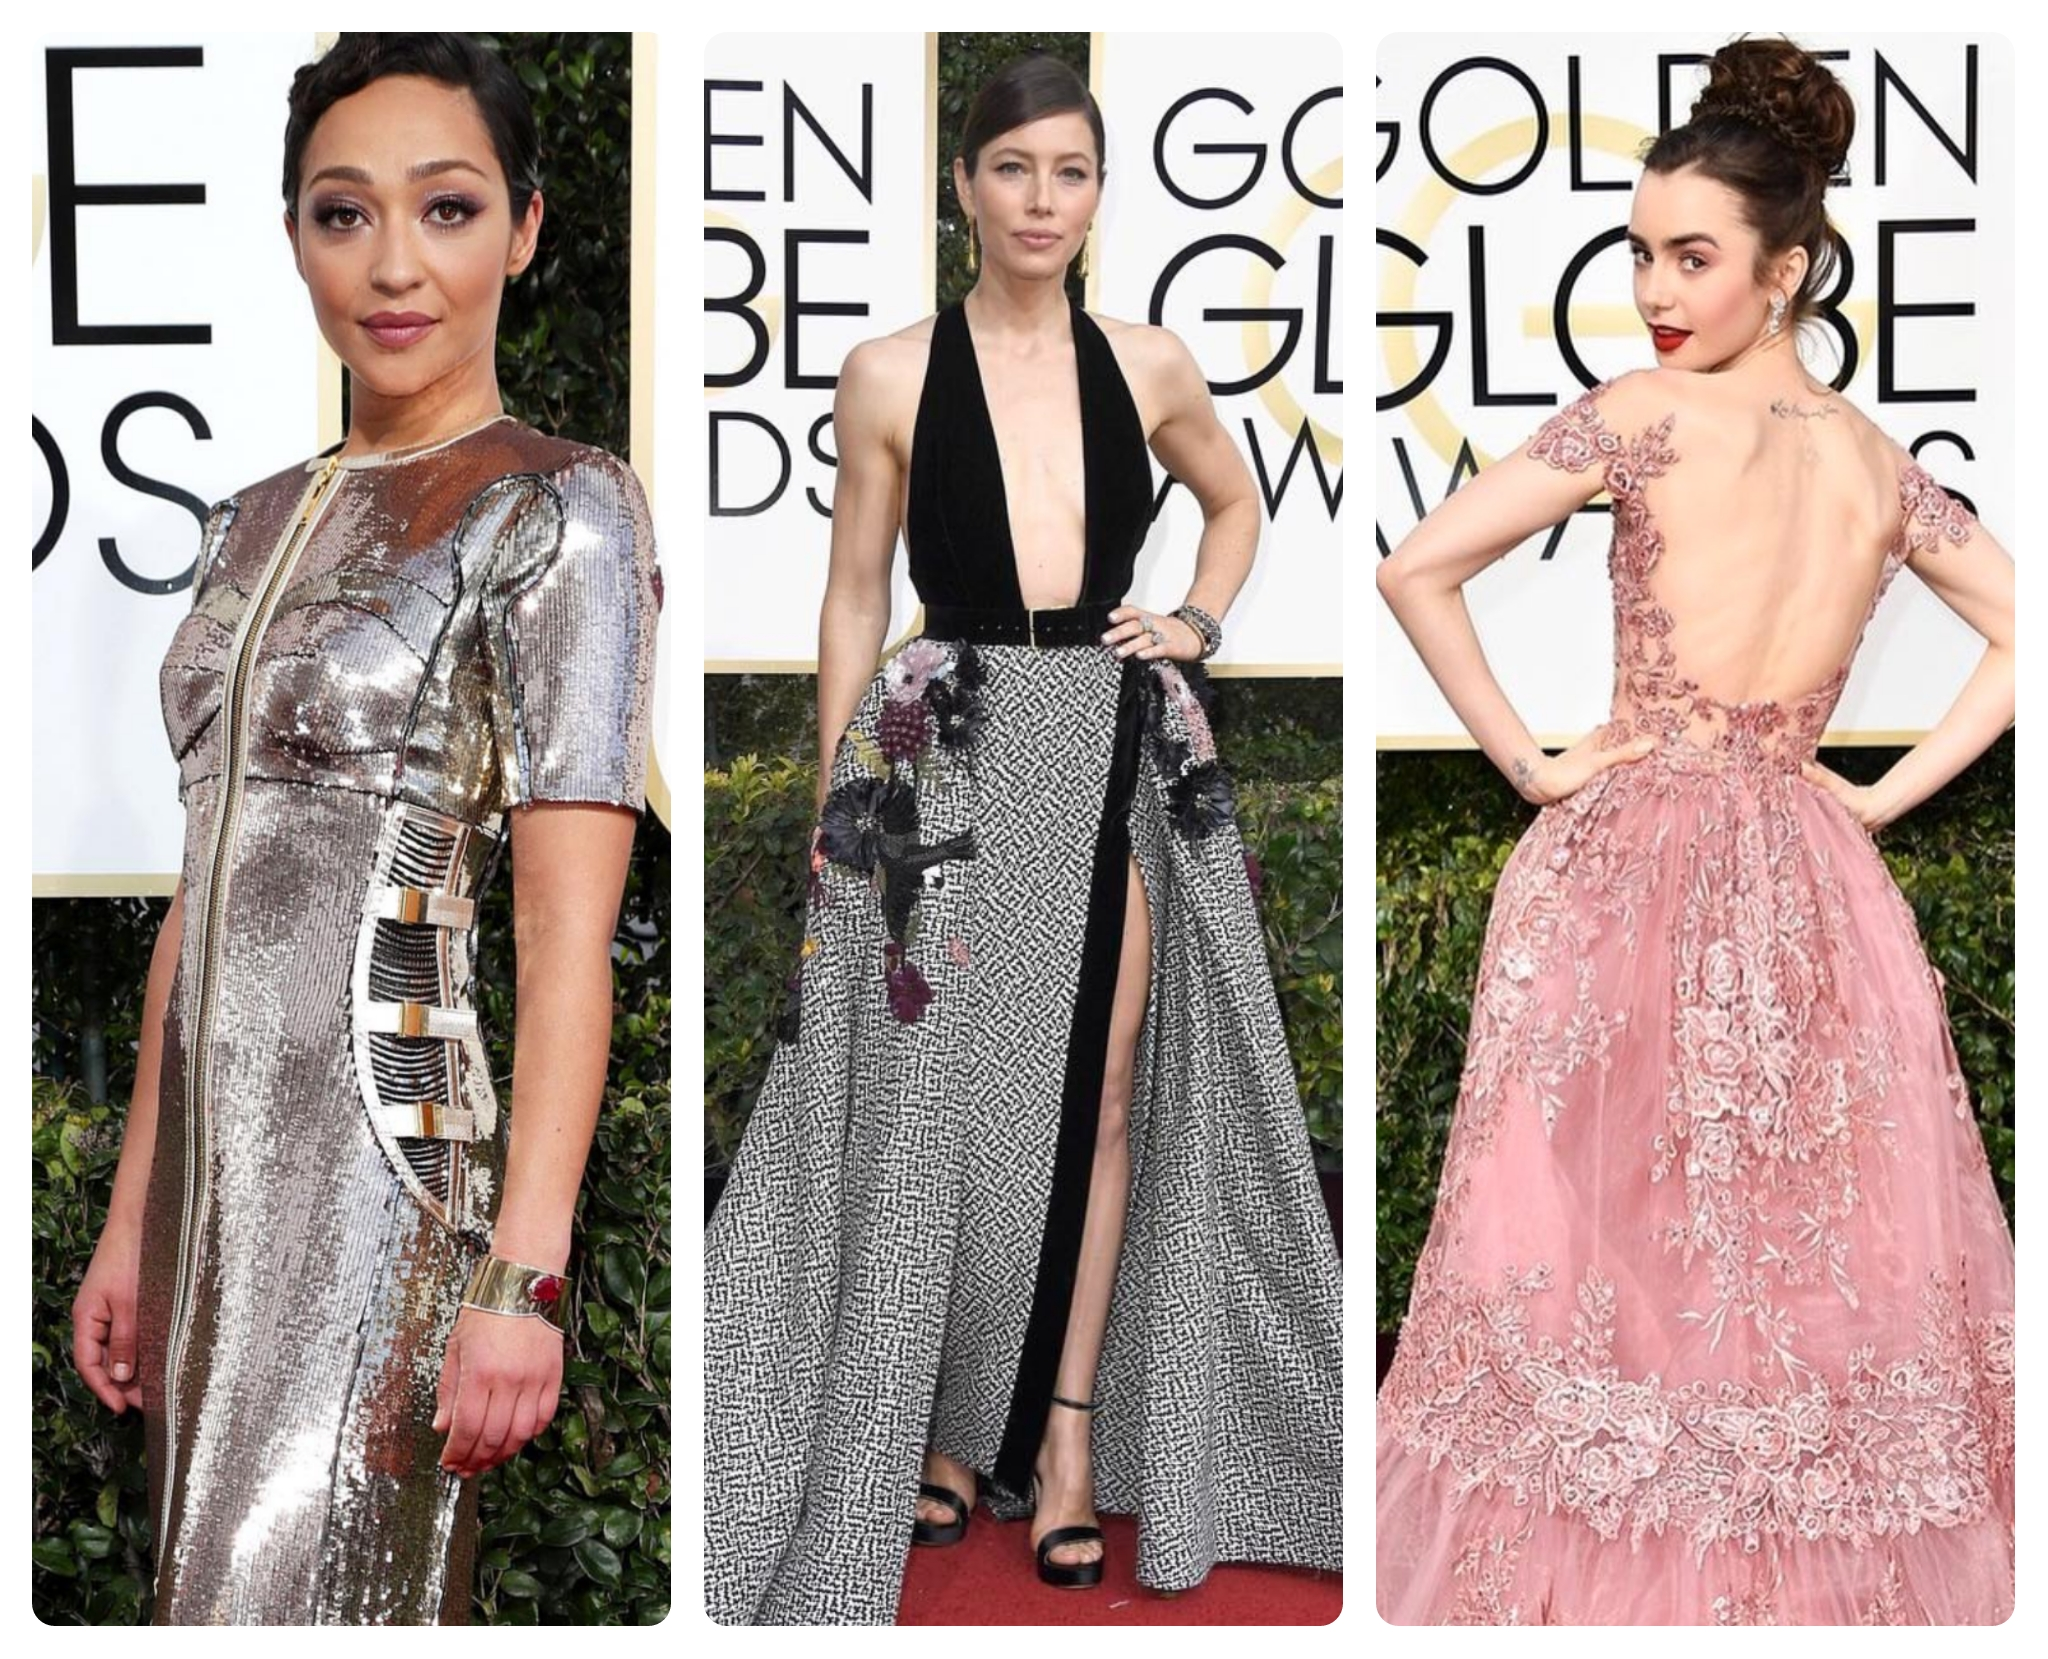 10 Best Dressed Women at the 2017 Golden Globes